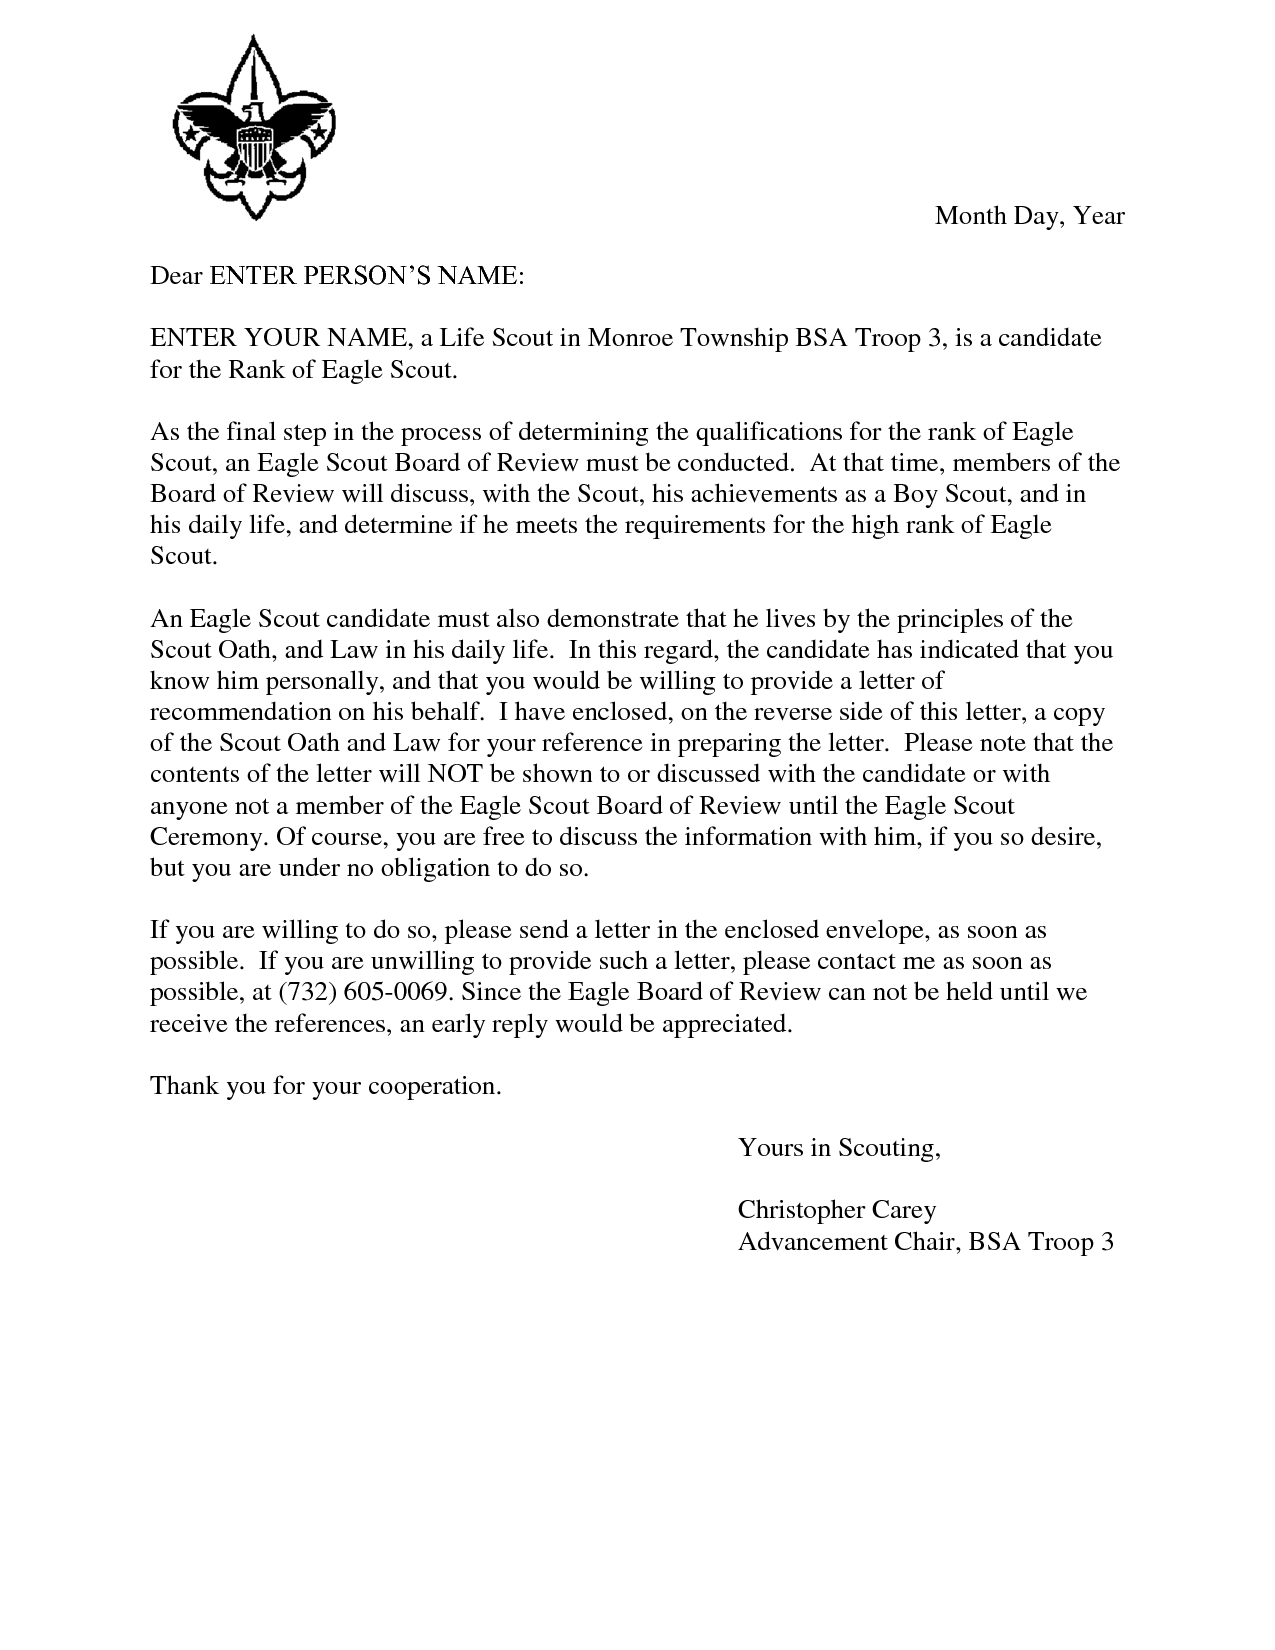 Eagle scout reference request sample letter doc 7 by hfr990q eagle scout reference request sample letter doc 7 by hfr990q tgqfagp7 spiritdancerdesigns Gallery